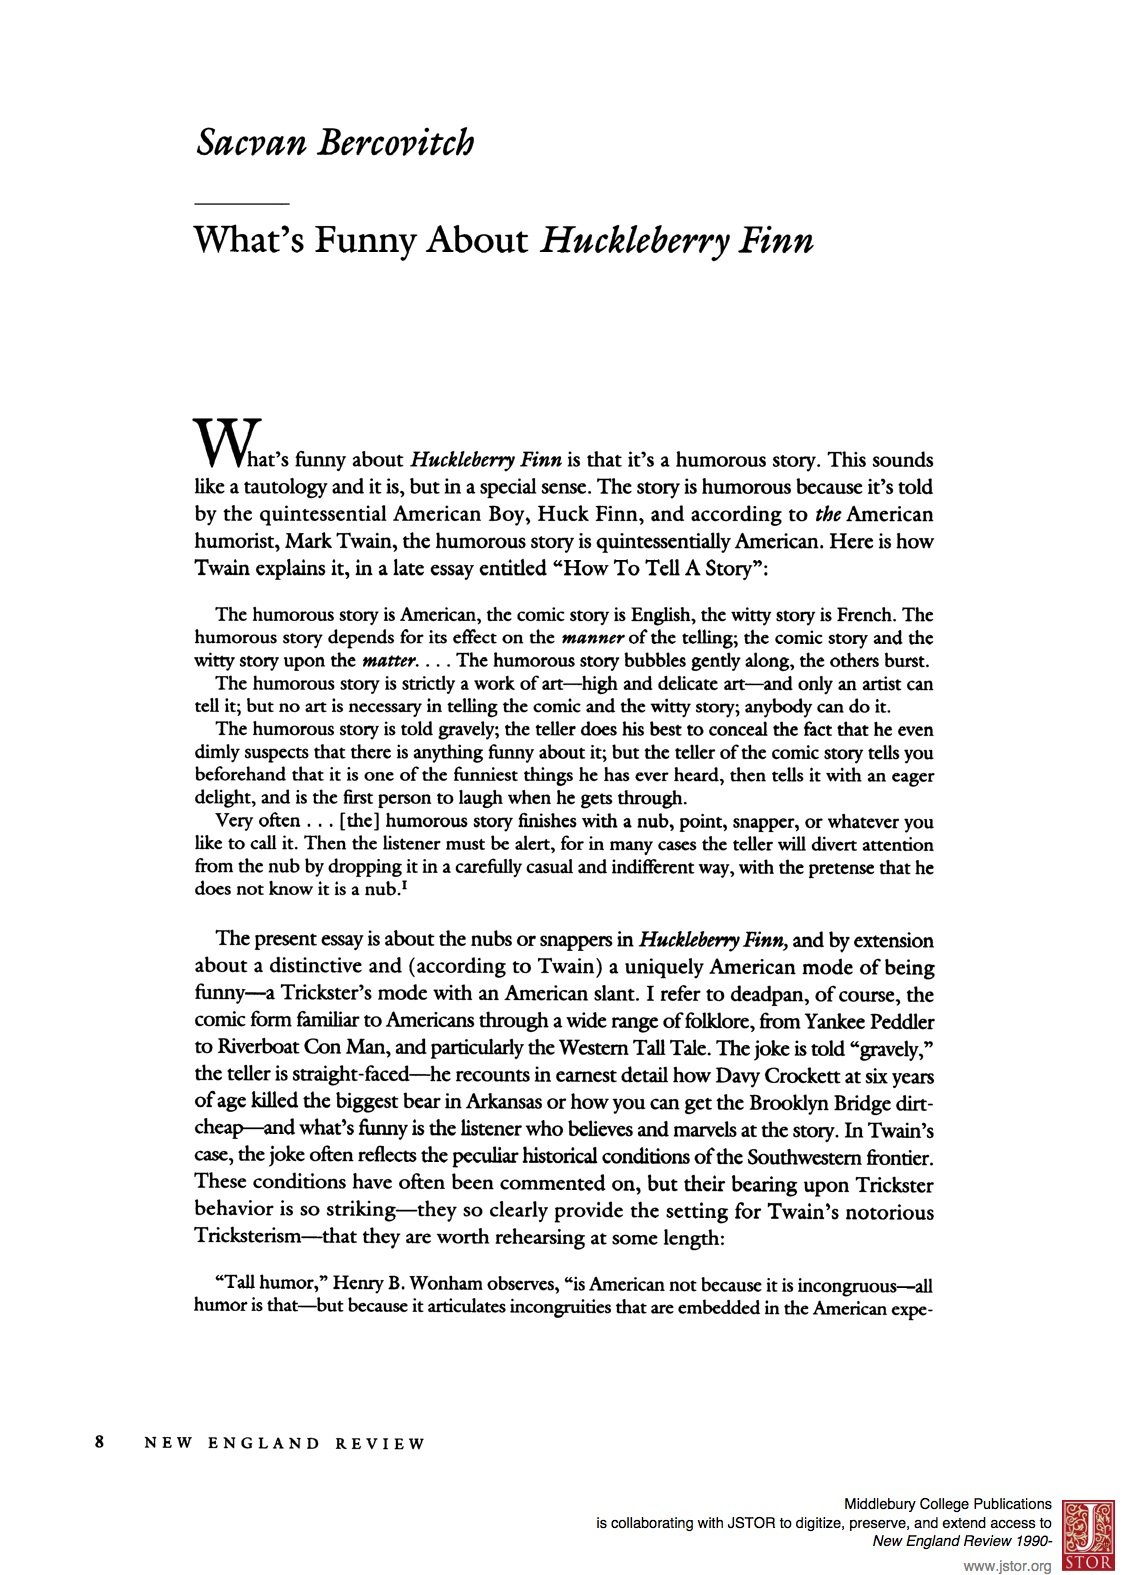 Huckleberry Finn Essay Huckleberry Finn Essay The